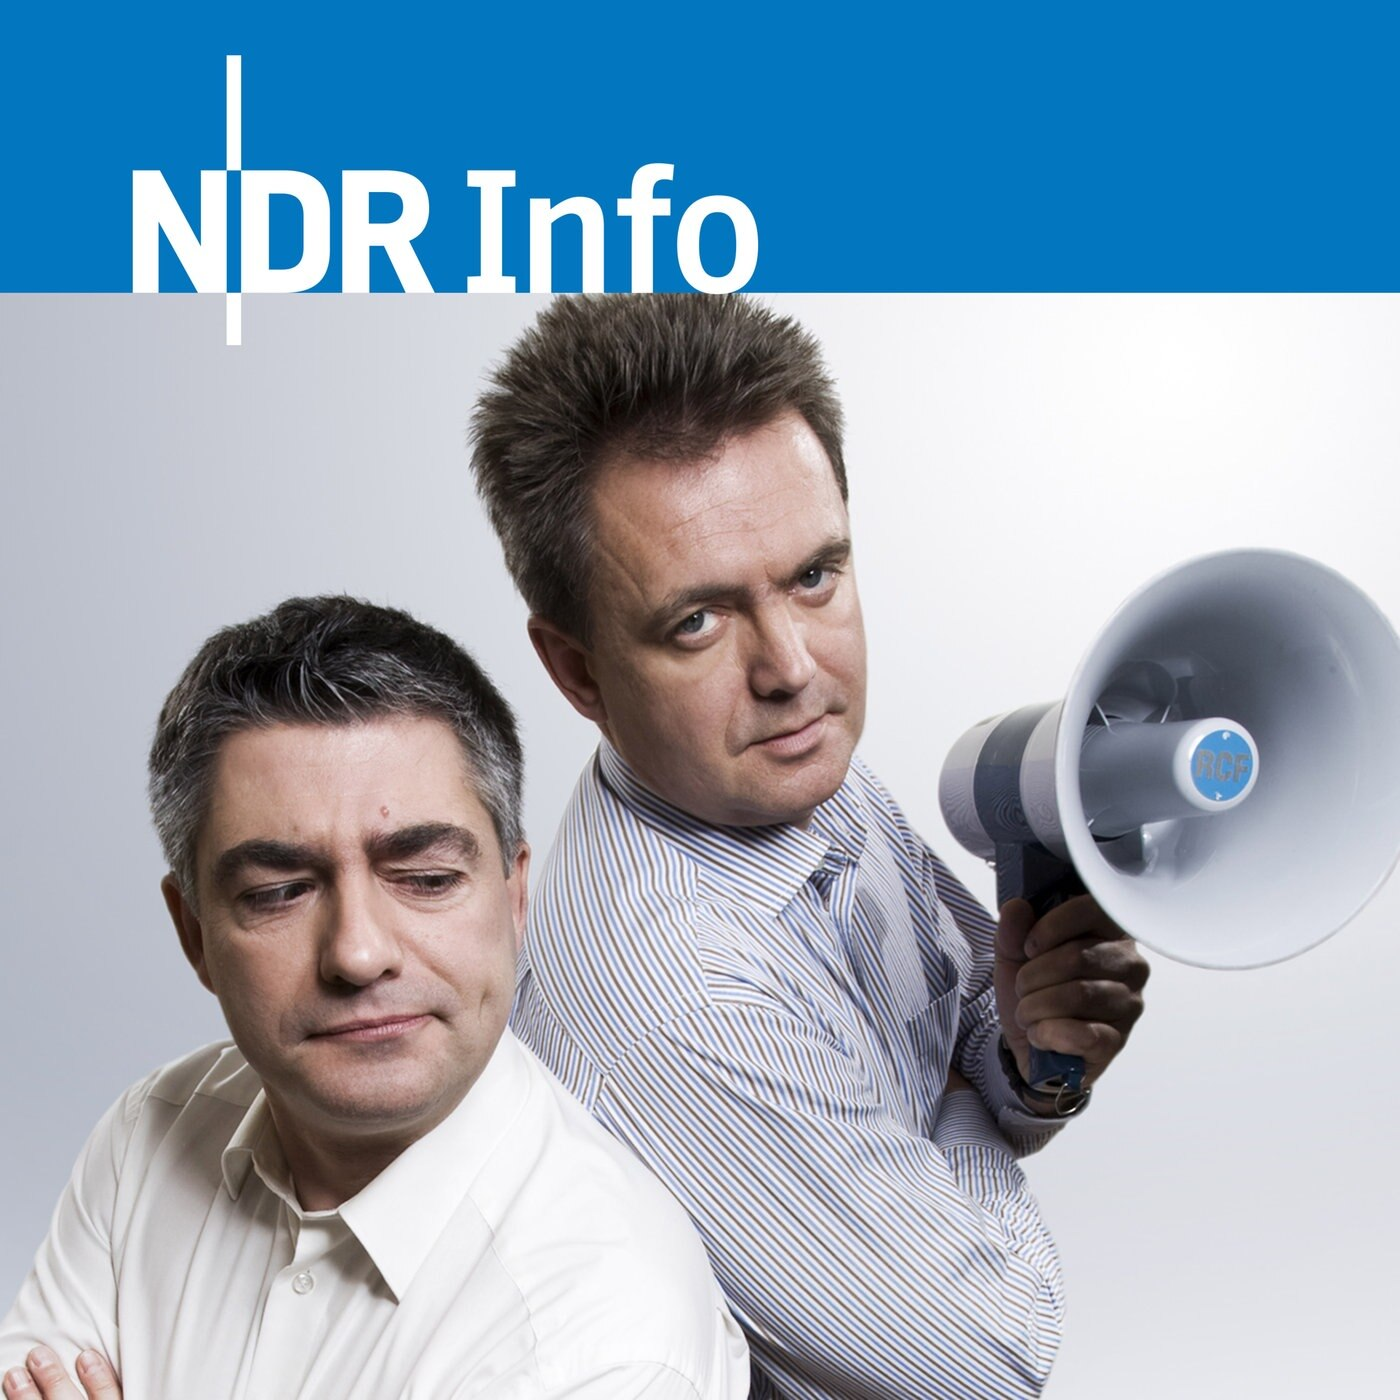 NDR Info - Intensiv-Station - Die Radio-Satire